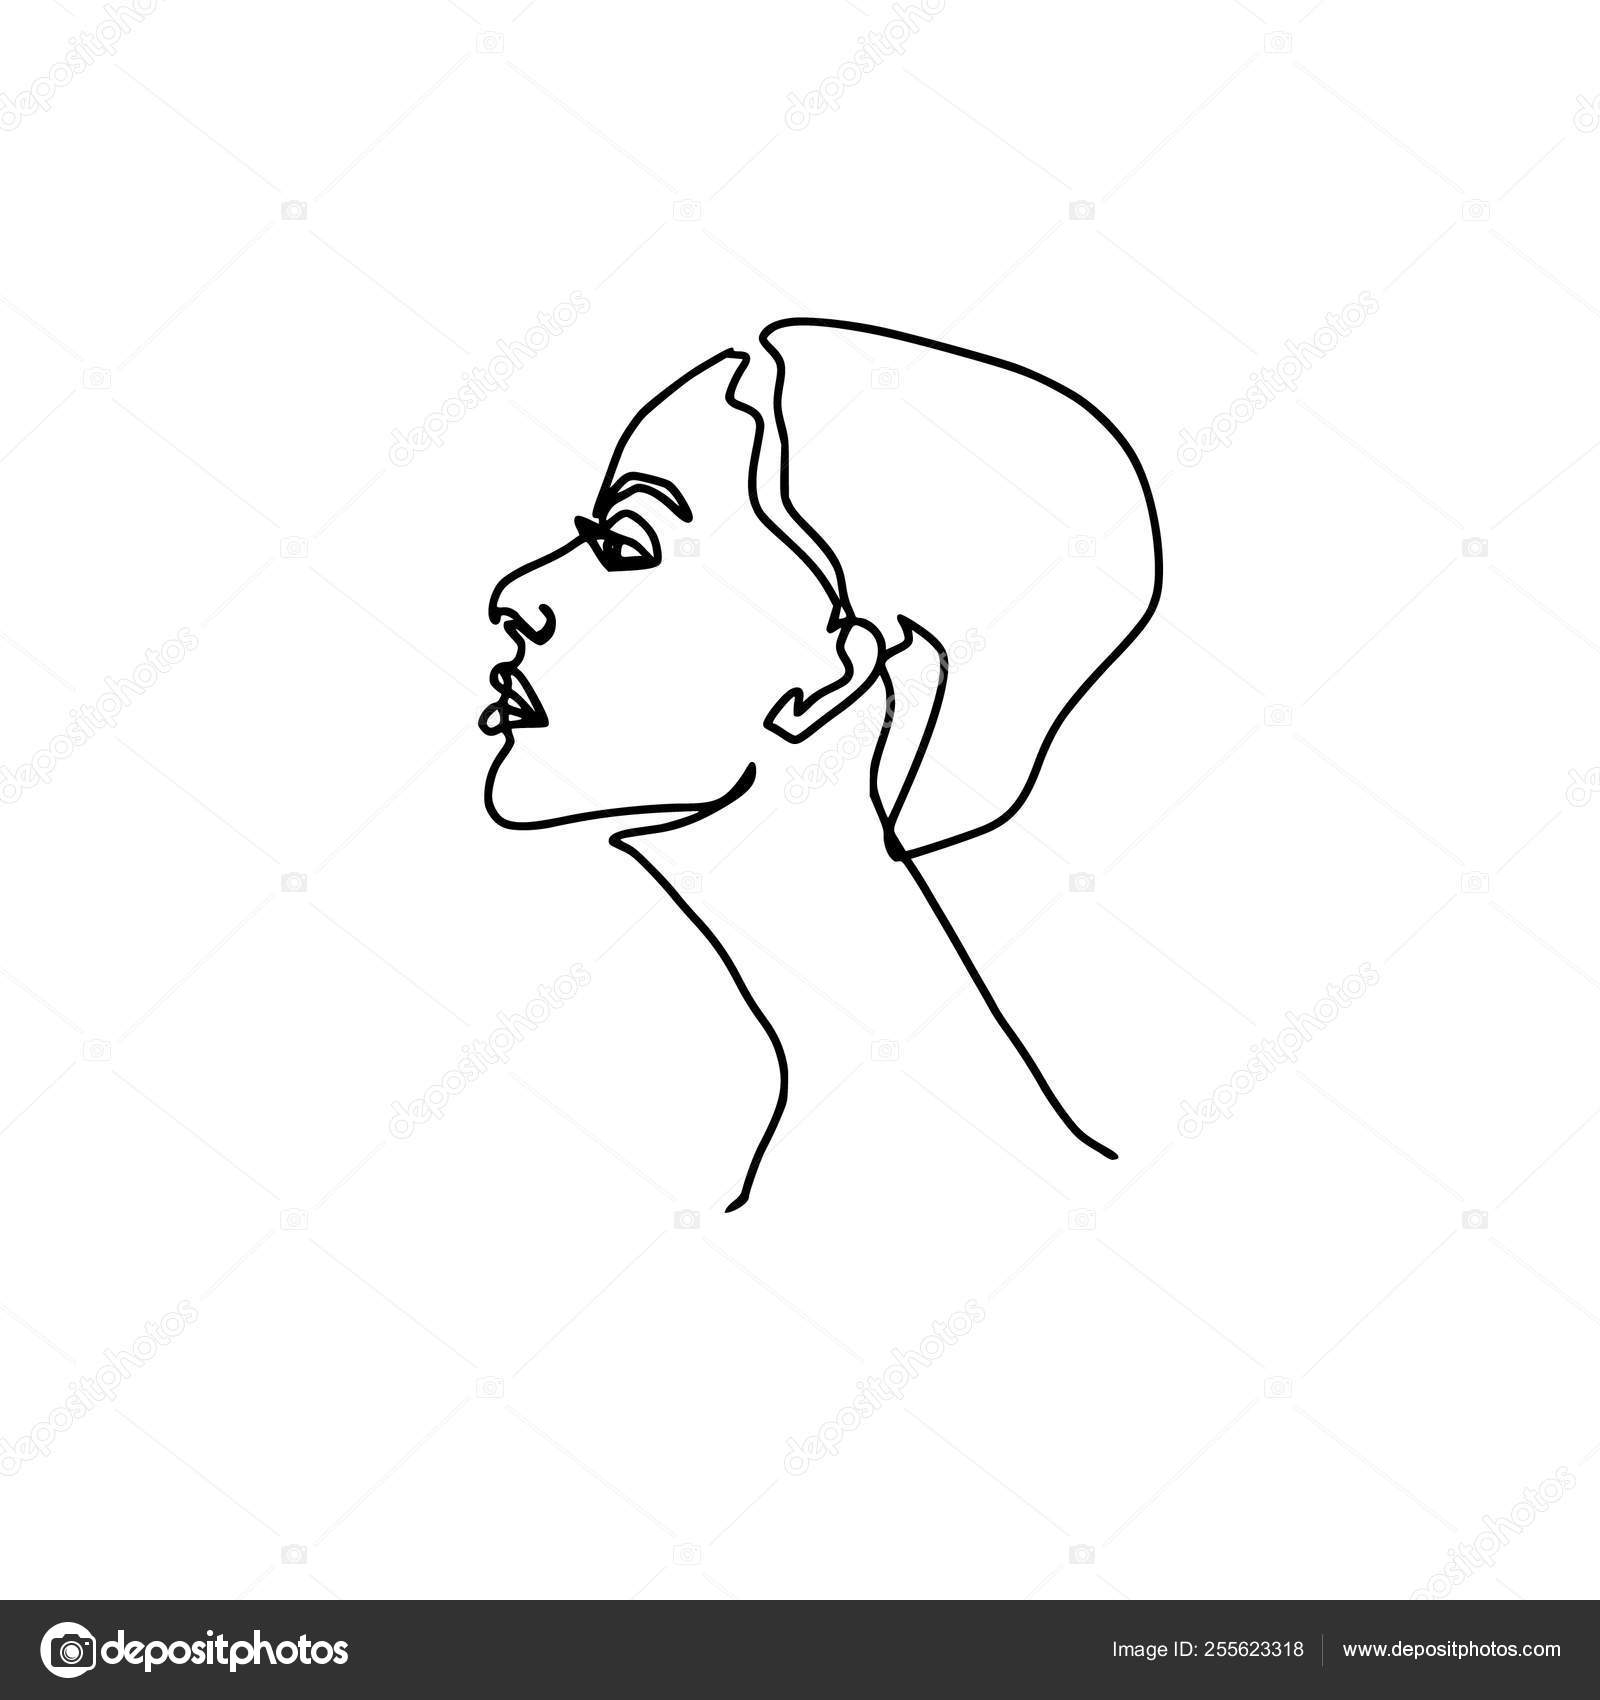 Abstract face one line drawing beauty woman portrait isolated on white minimalistic style continuous line stock illustration